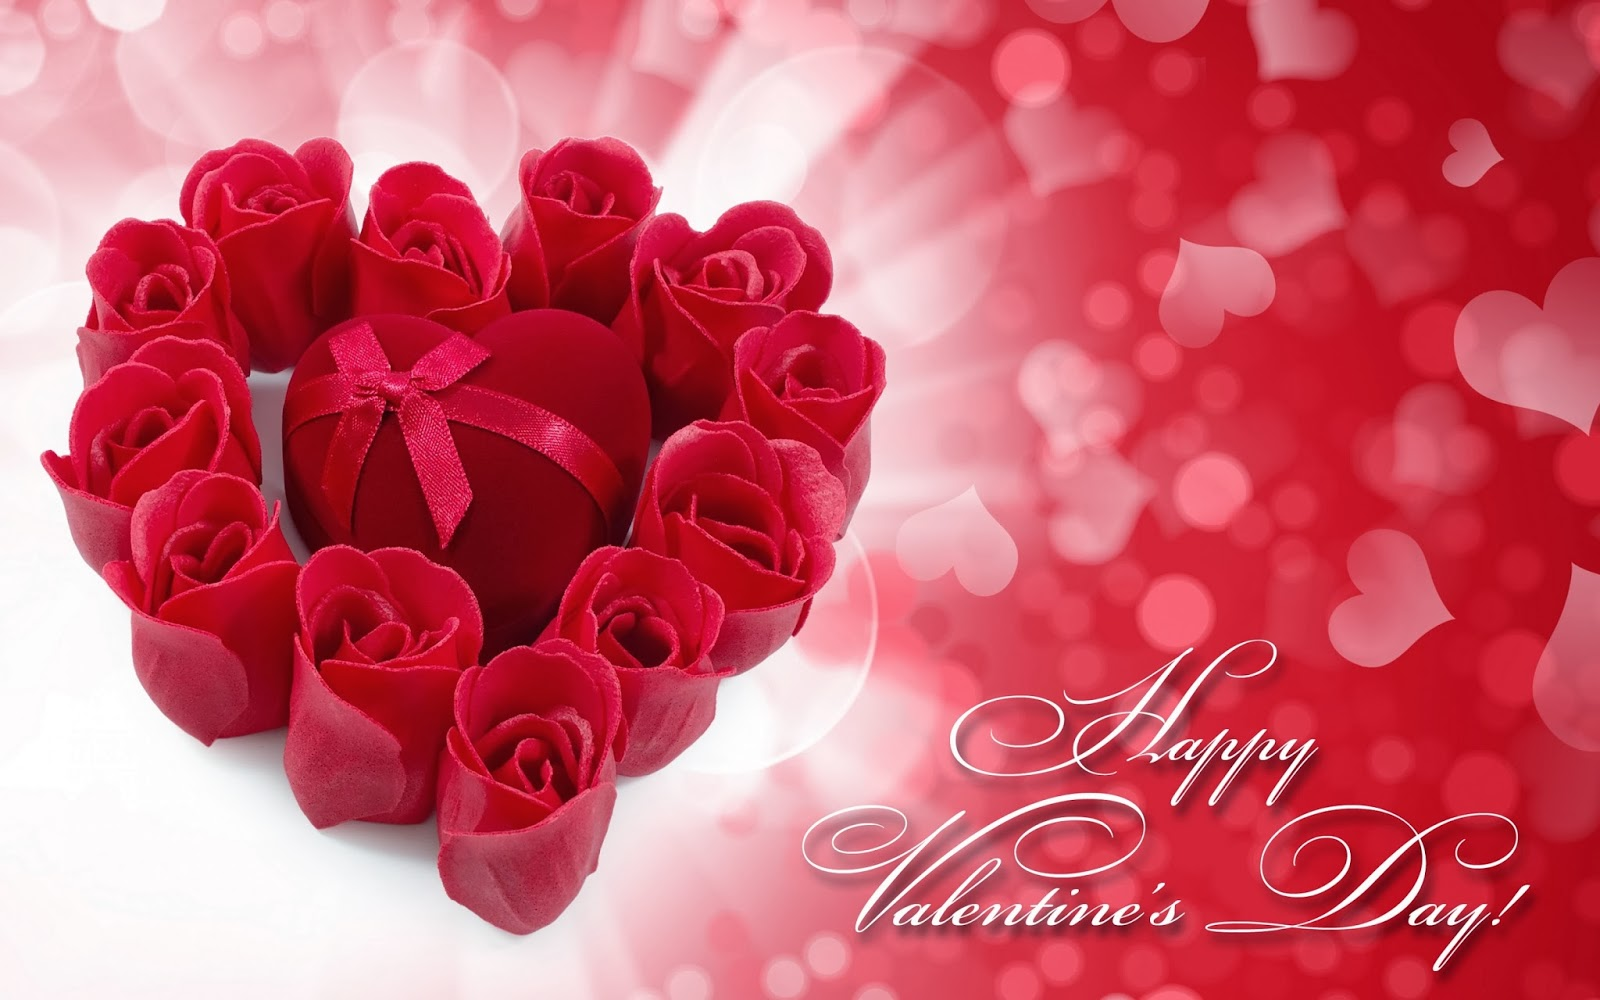 My Valentine 2014 Valentines Day Live Wallpapers Valentines Day